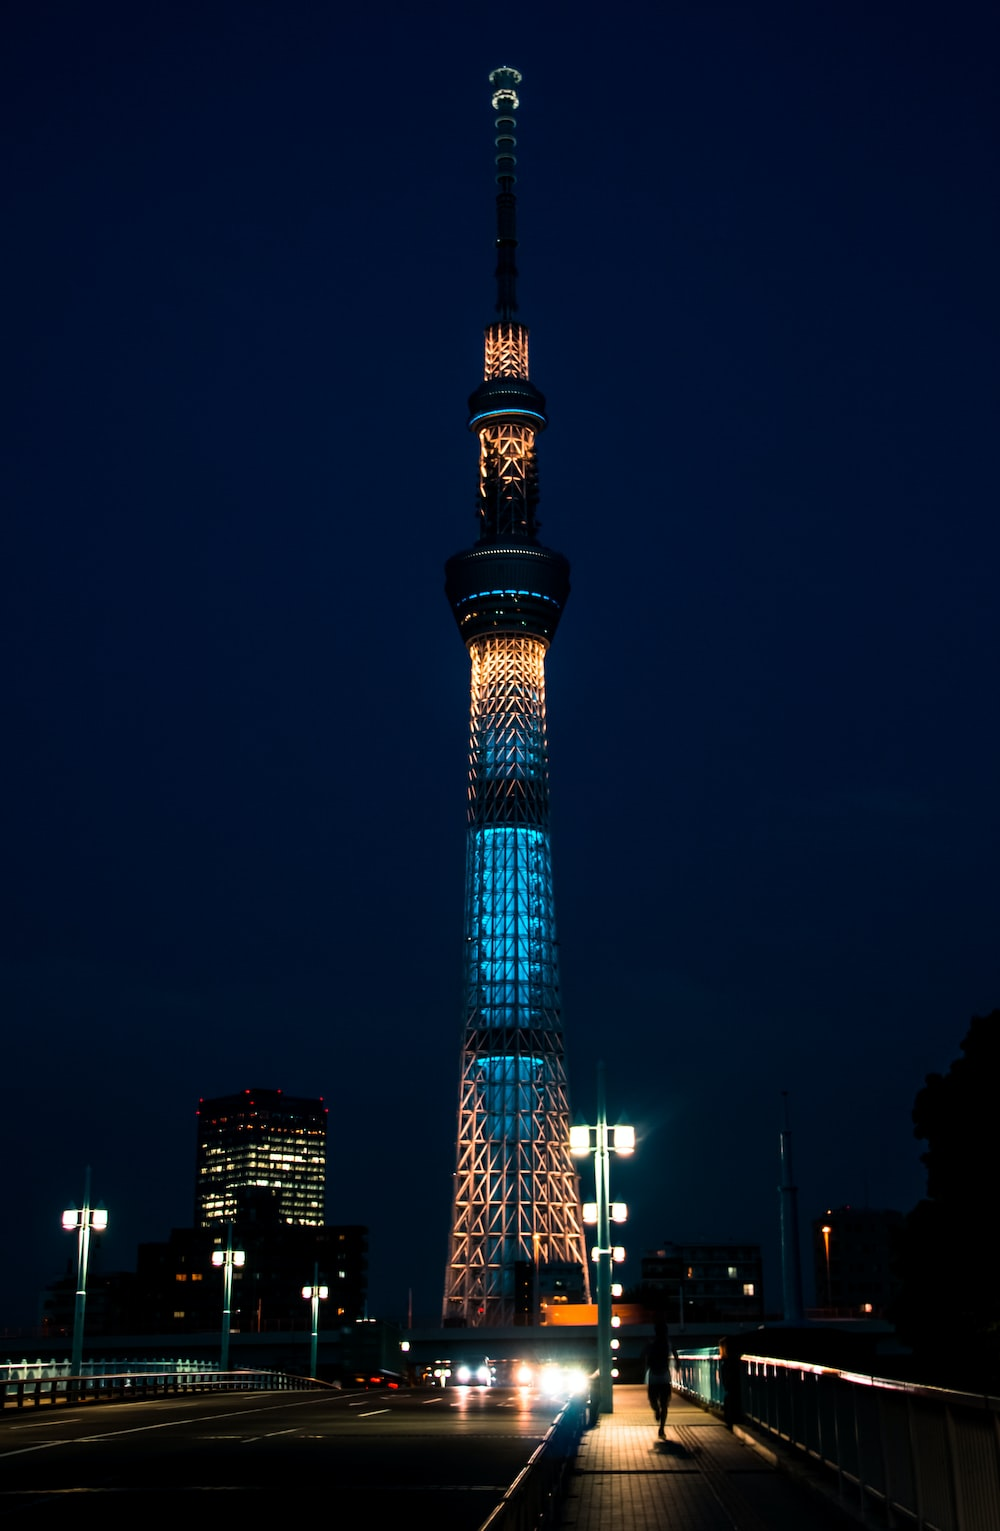 lighted tower during night time